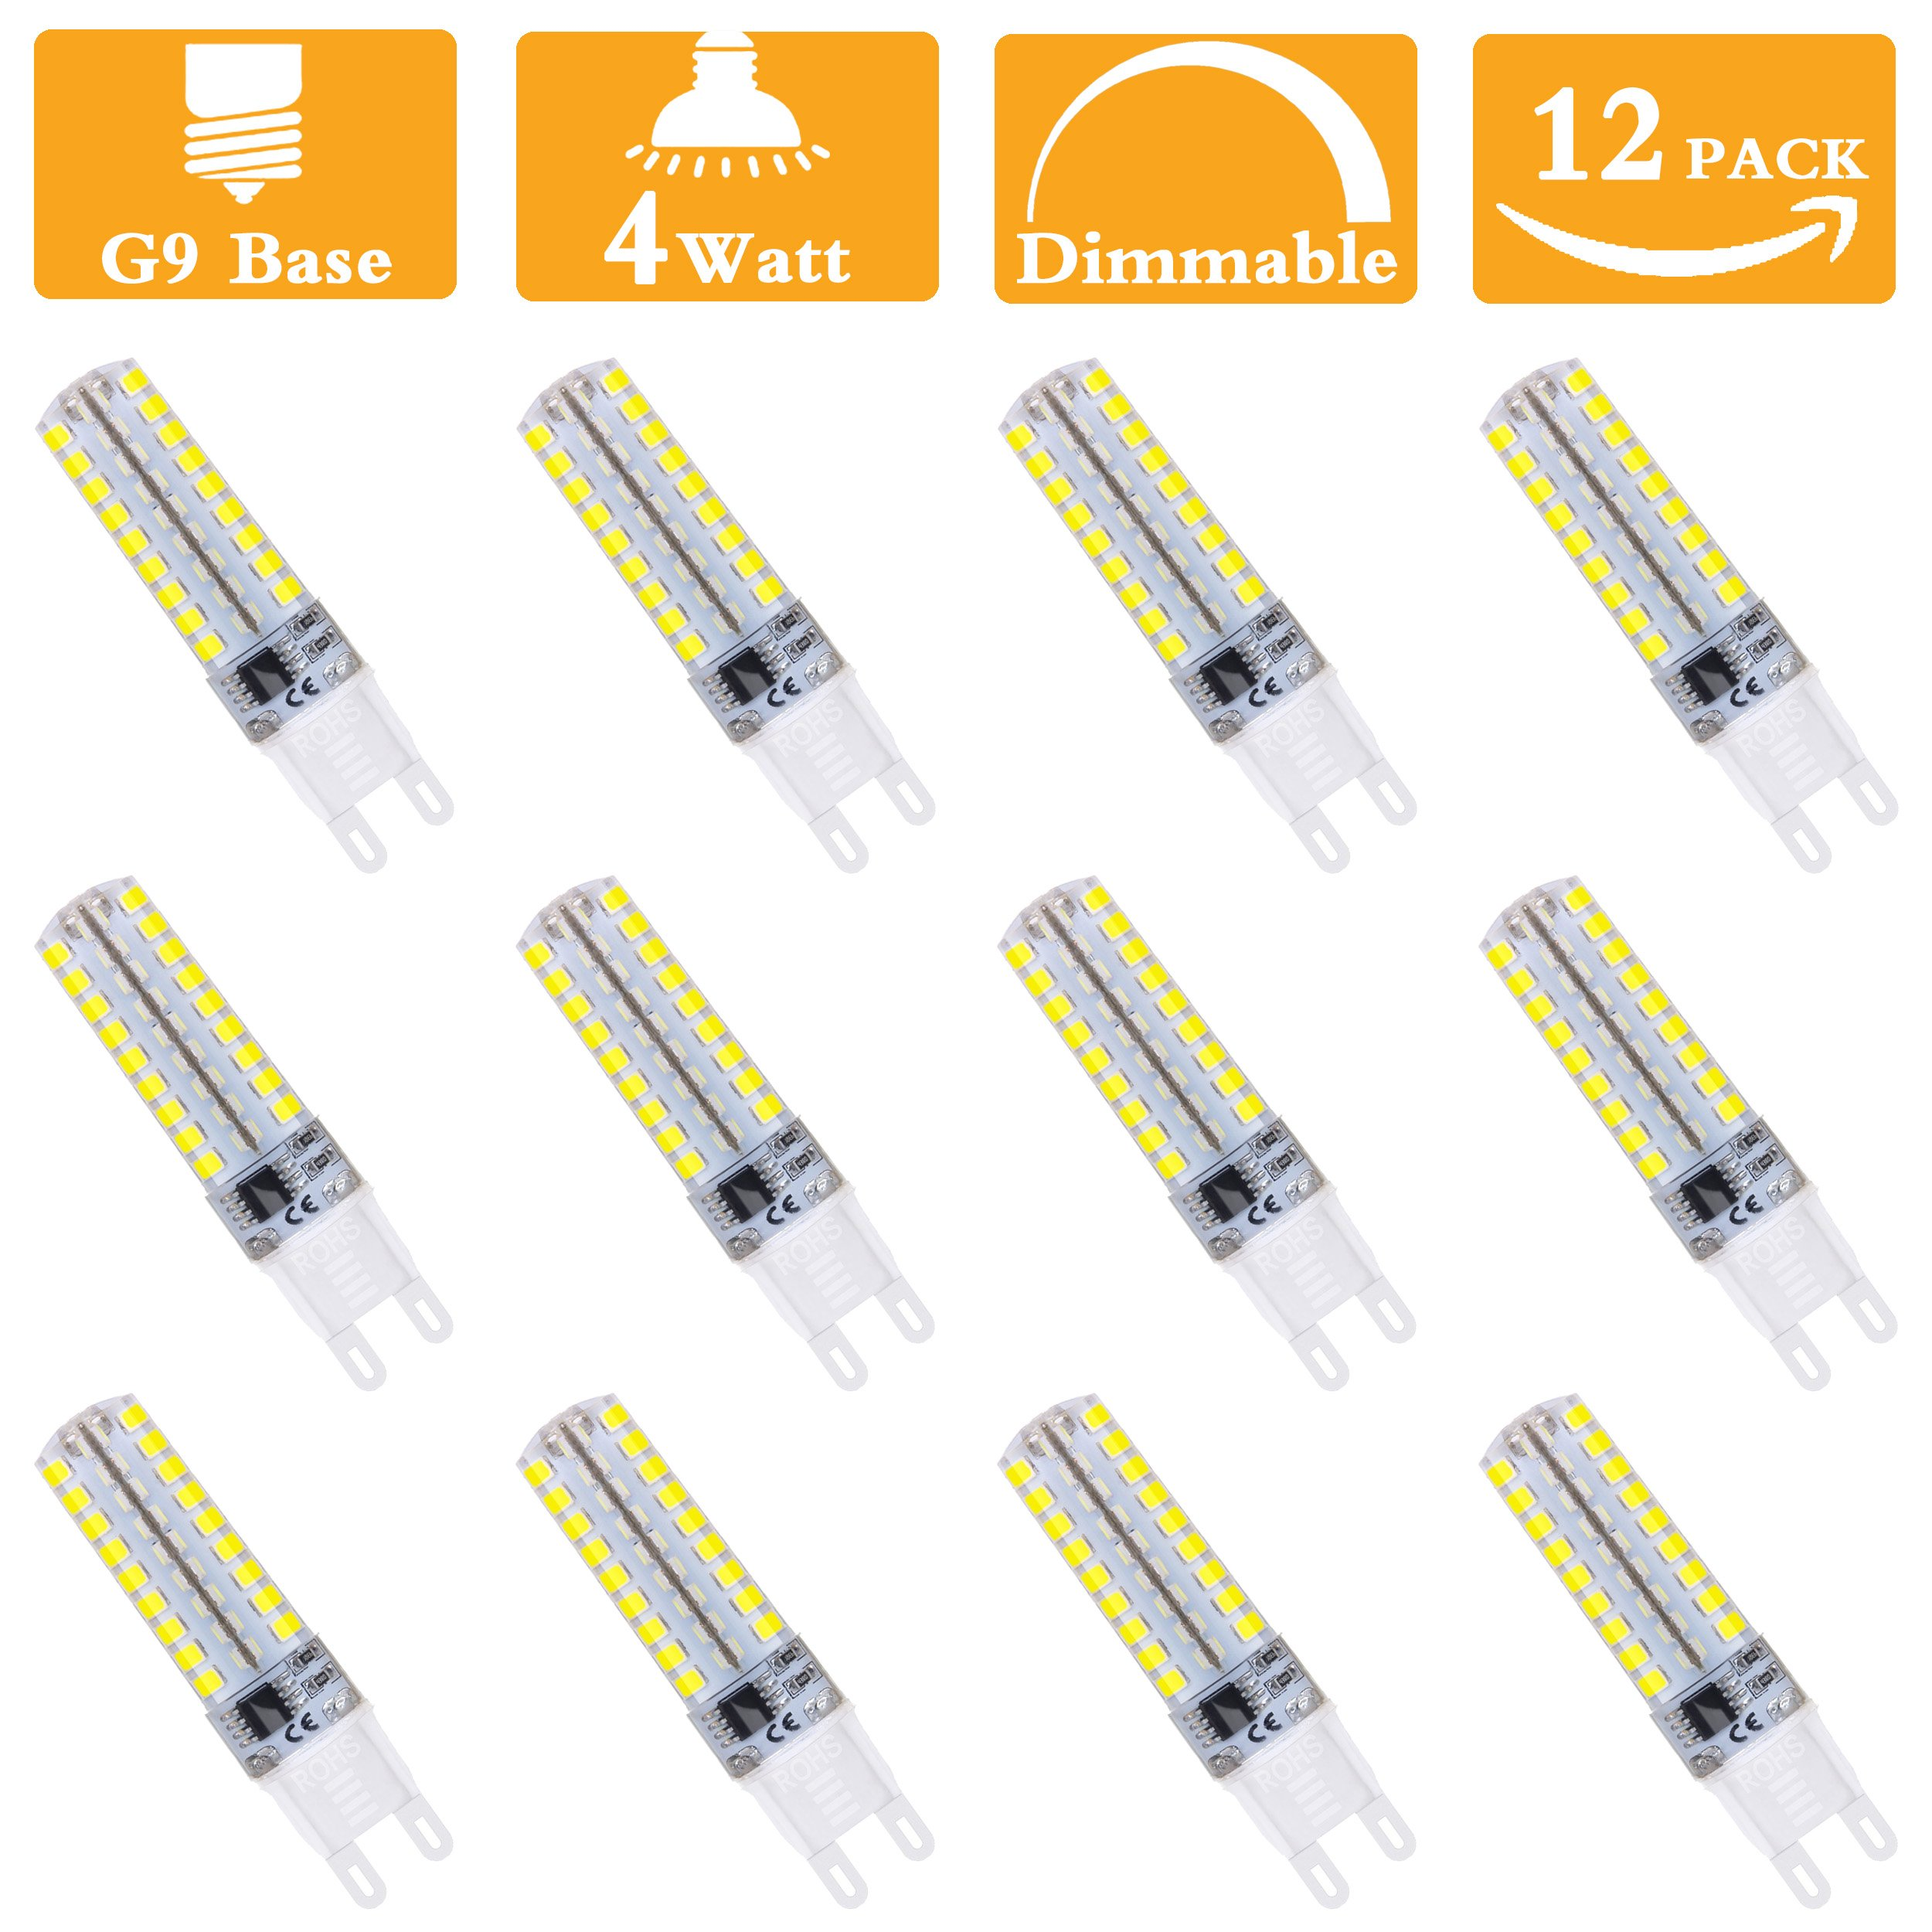 G9 LED Light Bulbs, 2700K Warm White, 360° Beam Angle,4W(40W Halogen Equivalent) Dimmable,400lm G9 base led Corn Bulb for Dining room,Coffe shop,Shopping Center,Office,Linear power supply-12 Pack